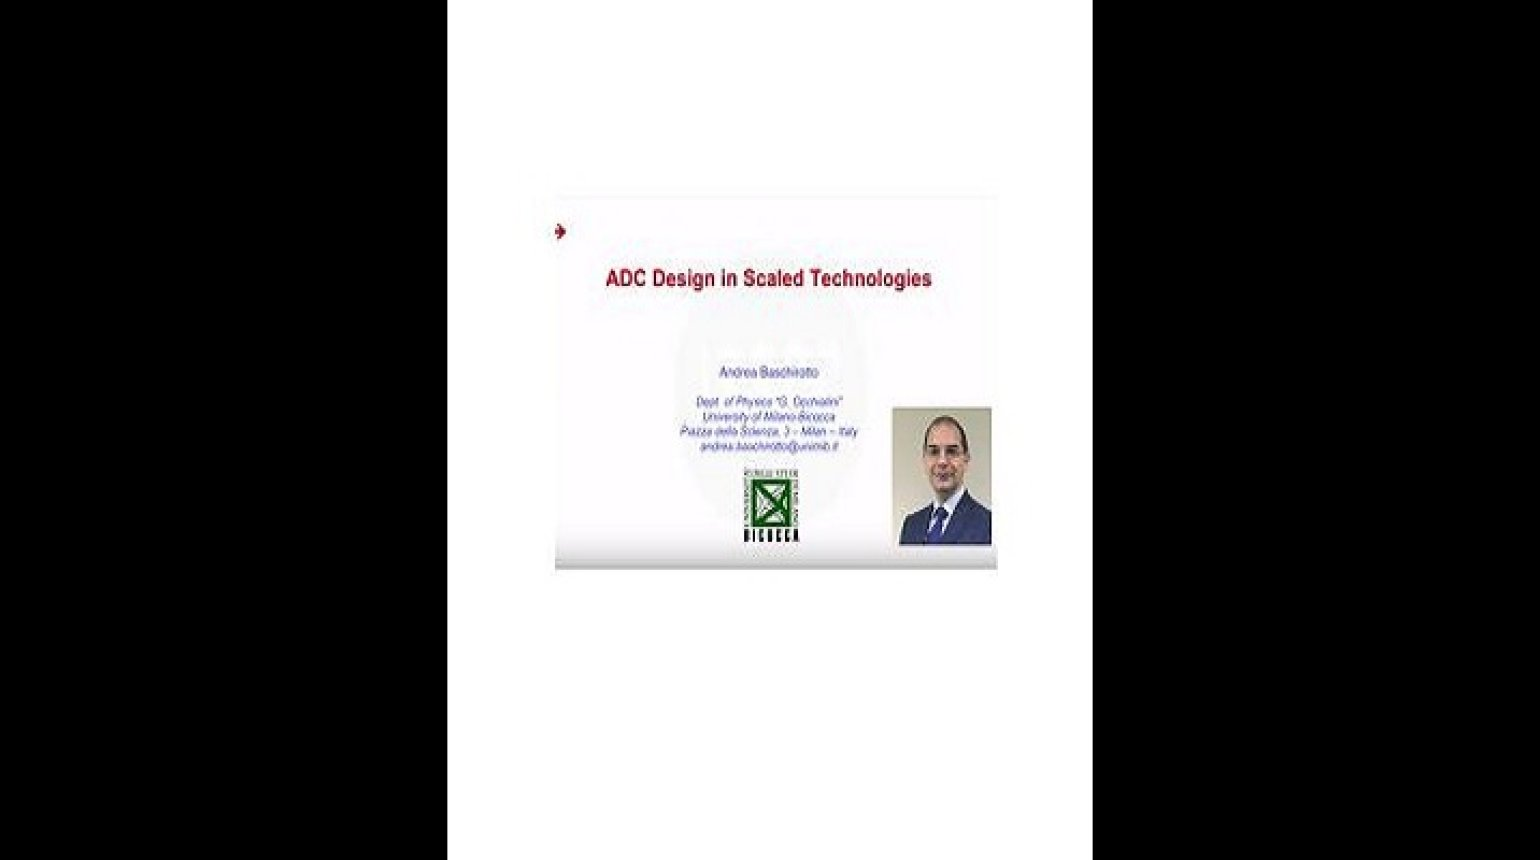 ADC Design in Scaled Technologies Video